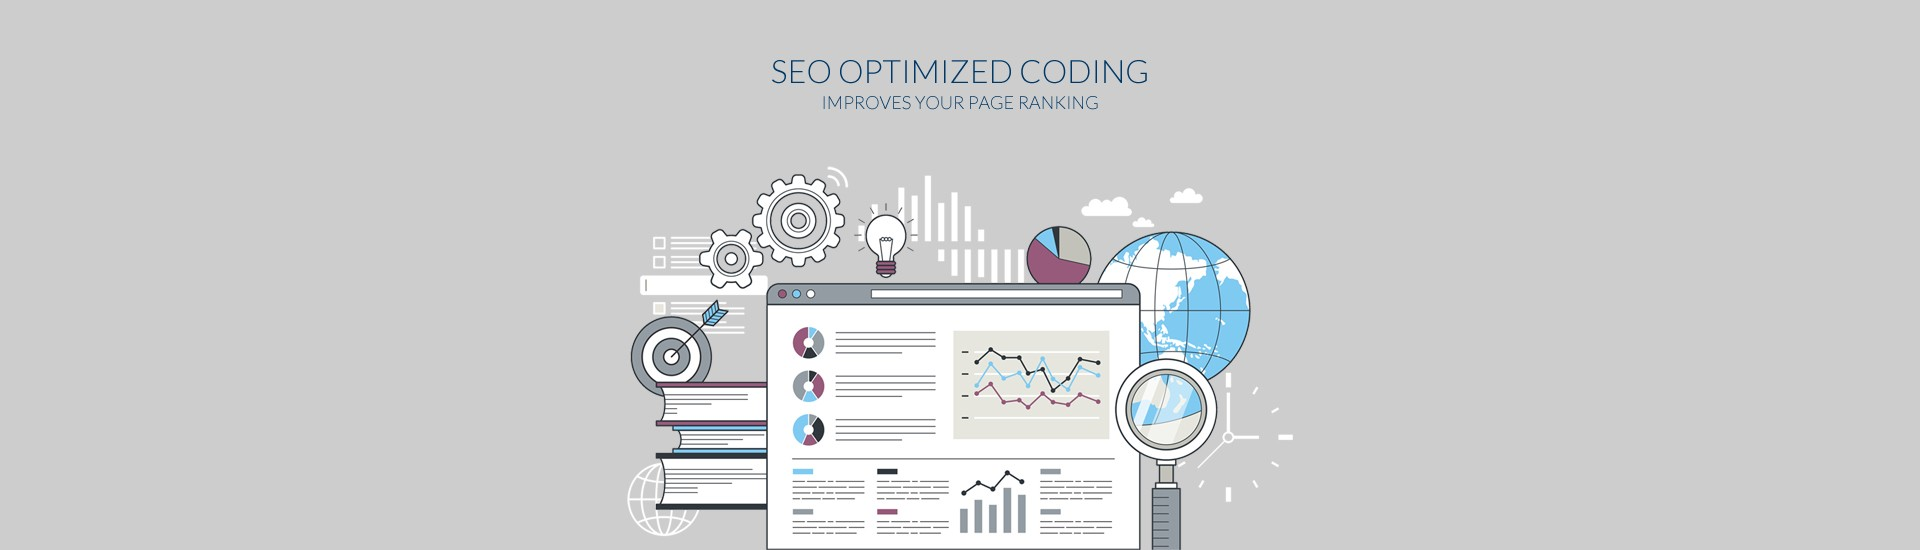 SEO Optimized Coding